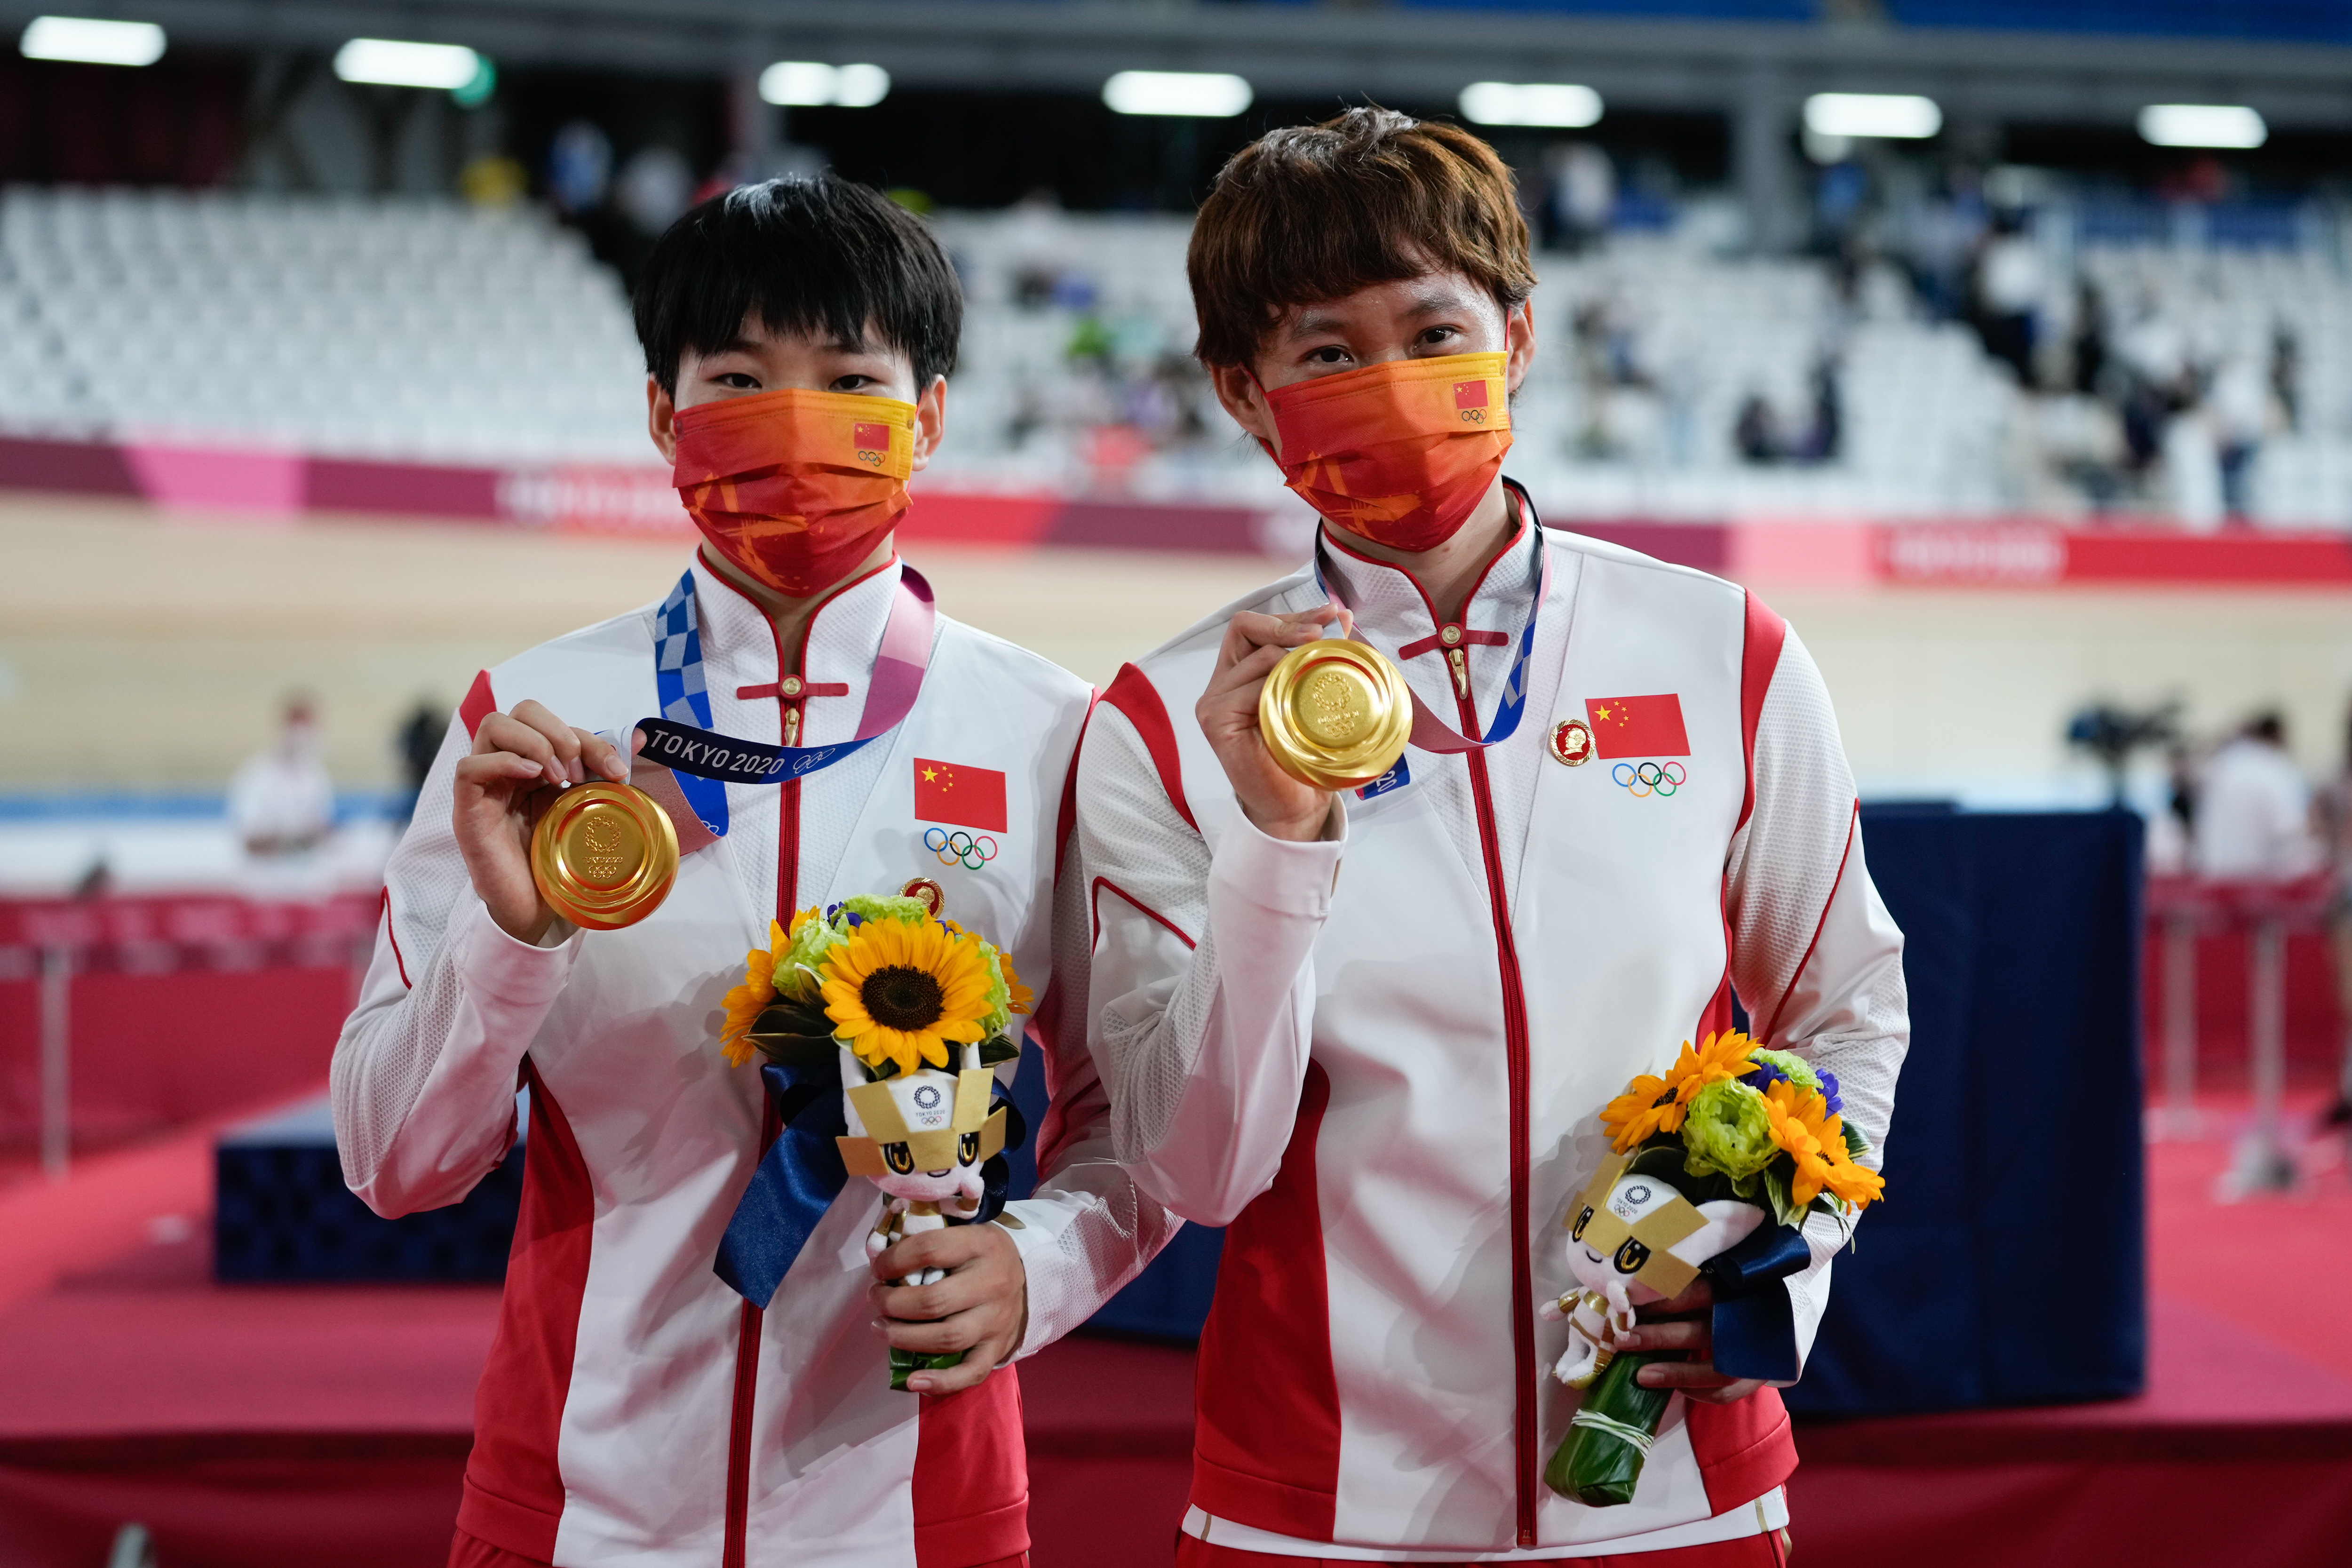 Gold medalists Zhong Tianshi and Bao Shanju of Team China pose during the medal ceremony for the women's team sprint track cycling finals  on day ten of the Tokyo Olympics on Aug 2, 2021 in Izu, Shizuoka, Japan.